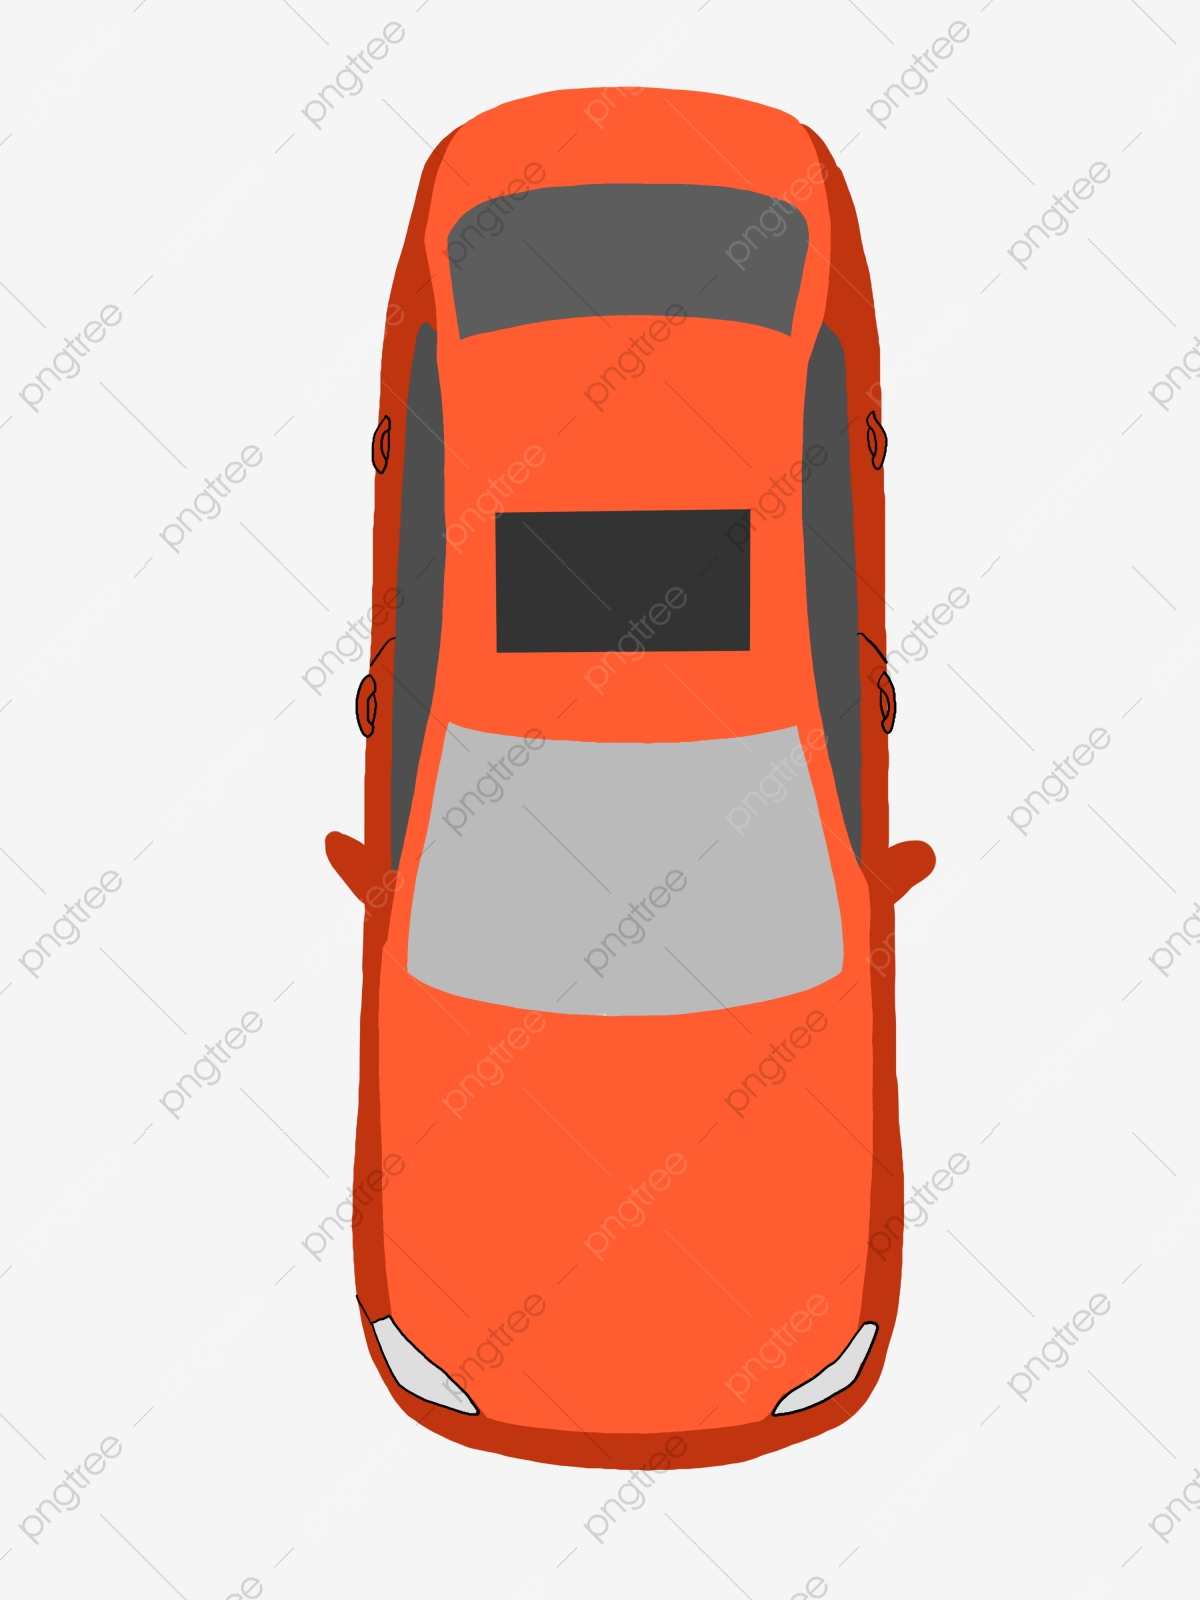 Car Cartoon Png : cartoon, Cartoon, Illustration,, Transport, Transparent, Clipart, Image, Download